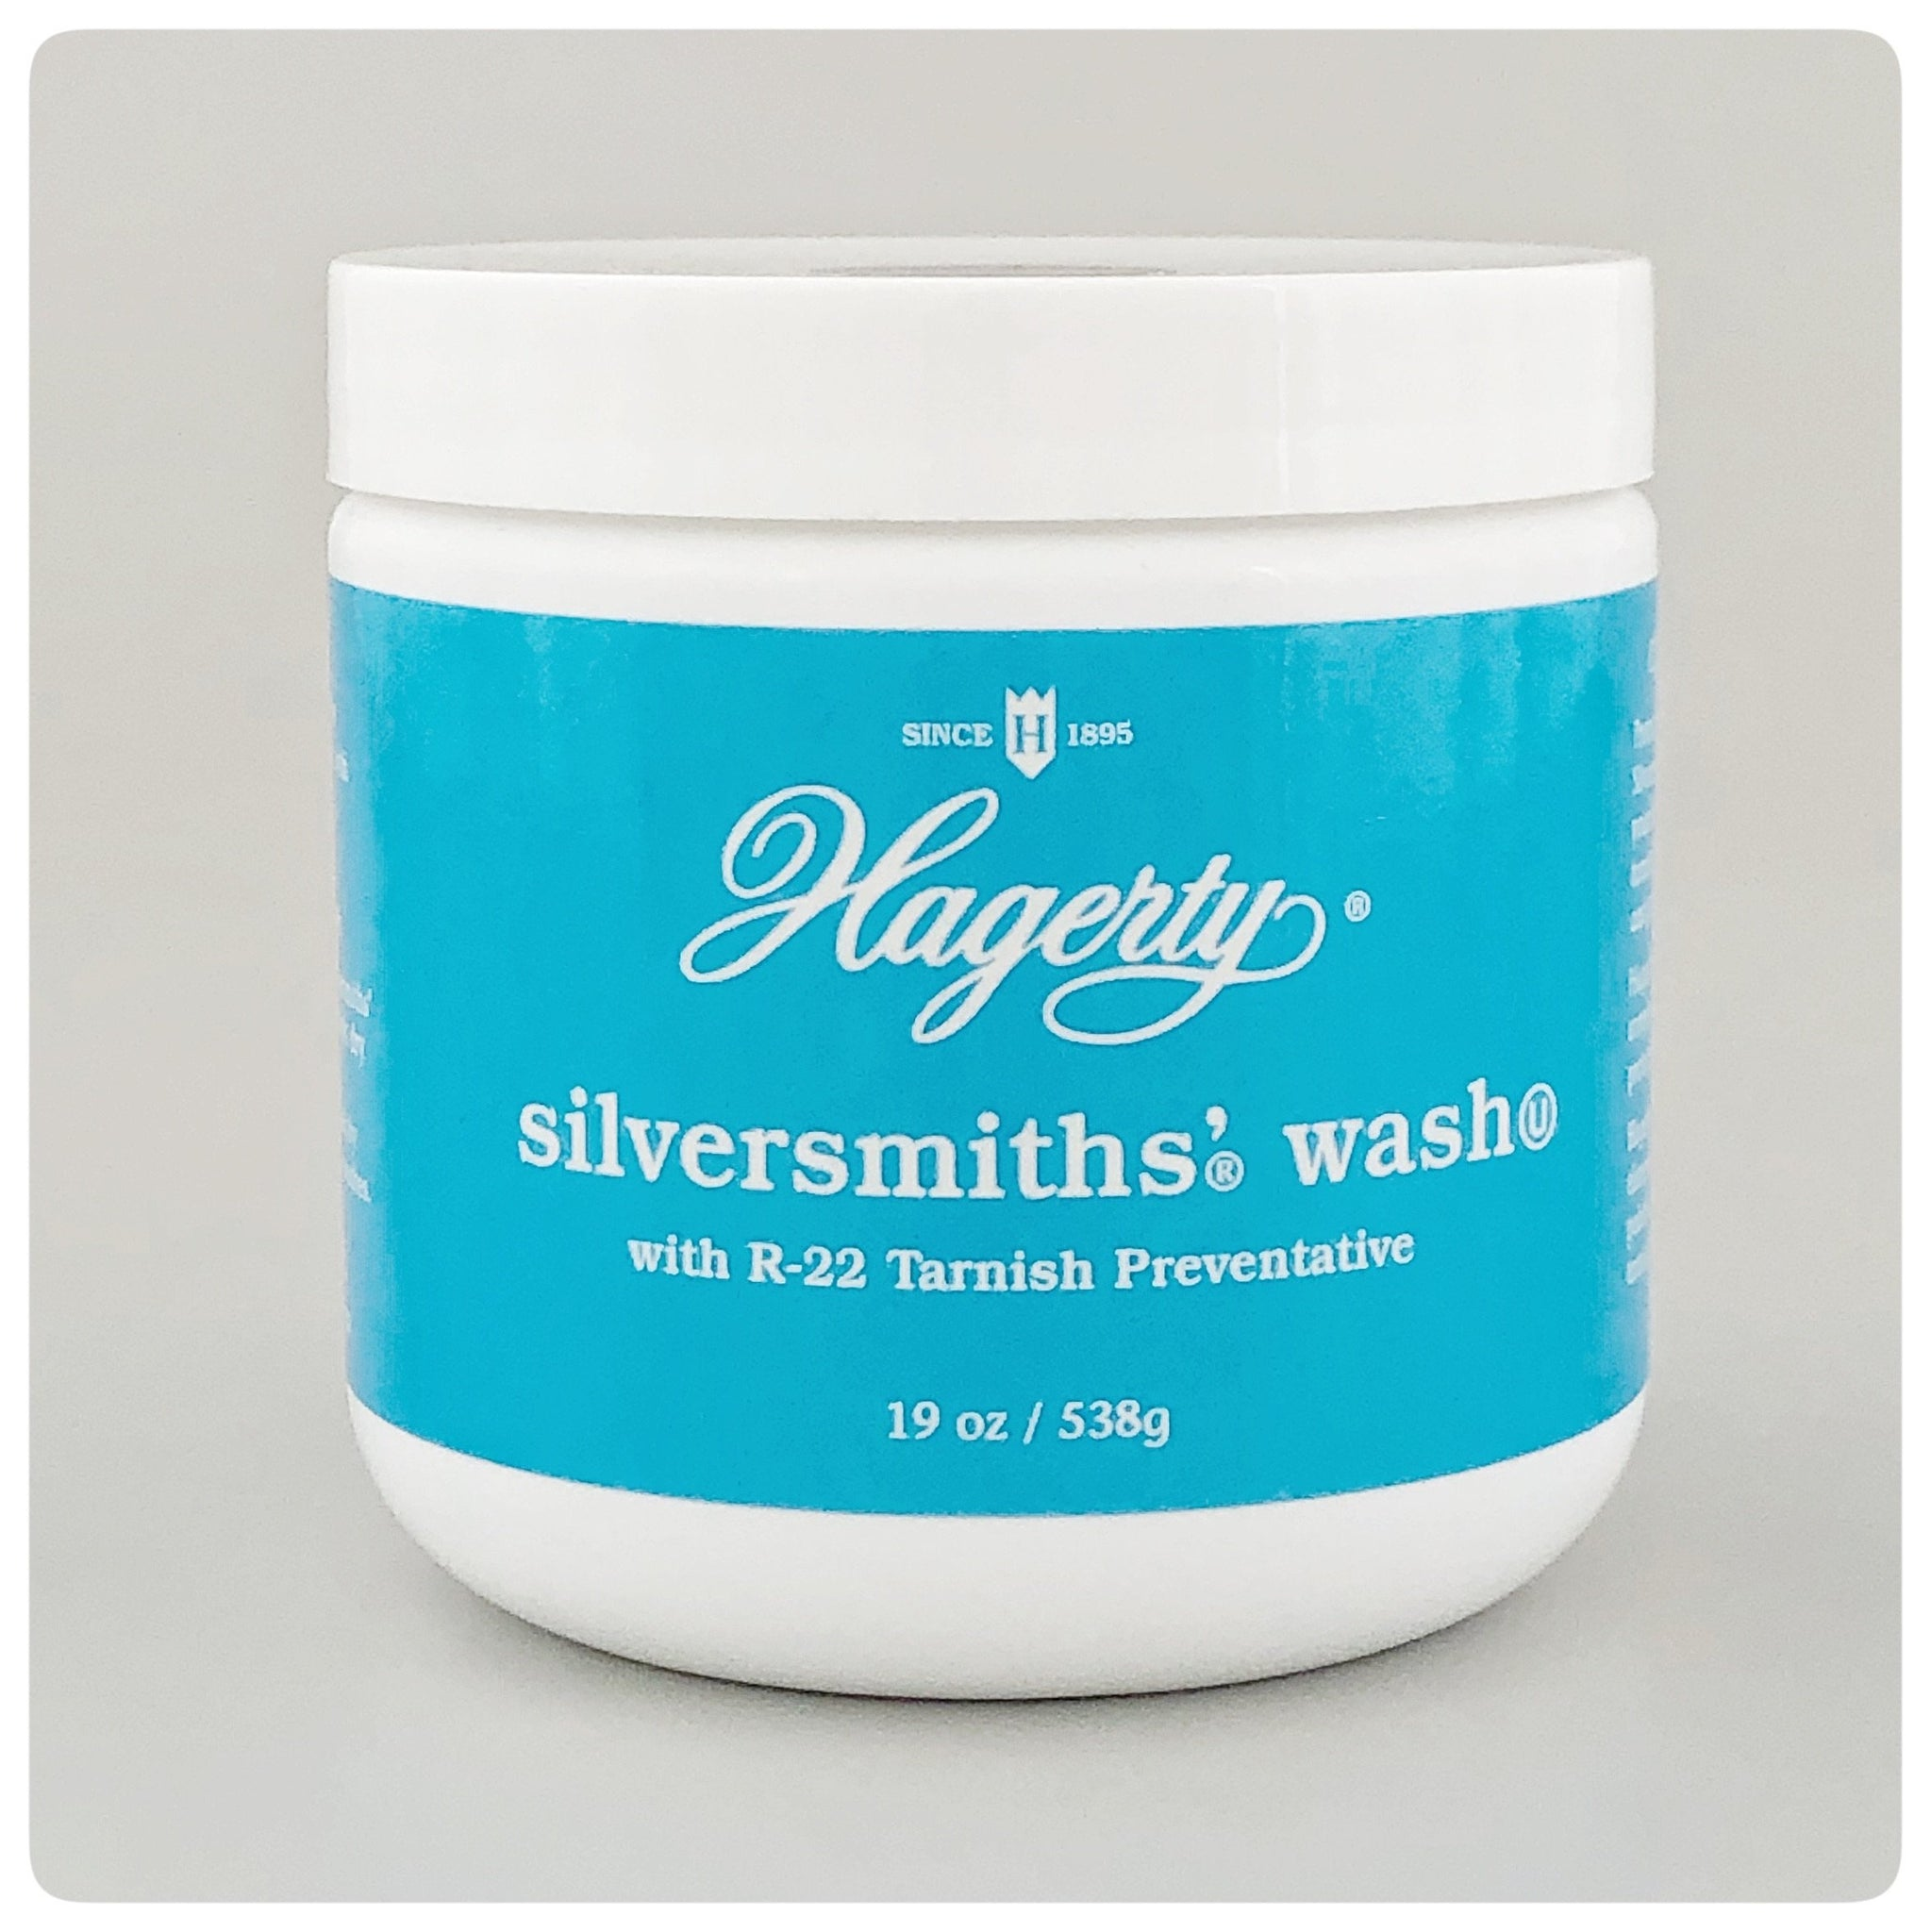 Hagerty Silversmiths' Wash - The Silver Vault of Charleston